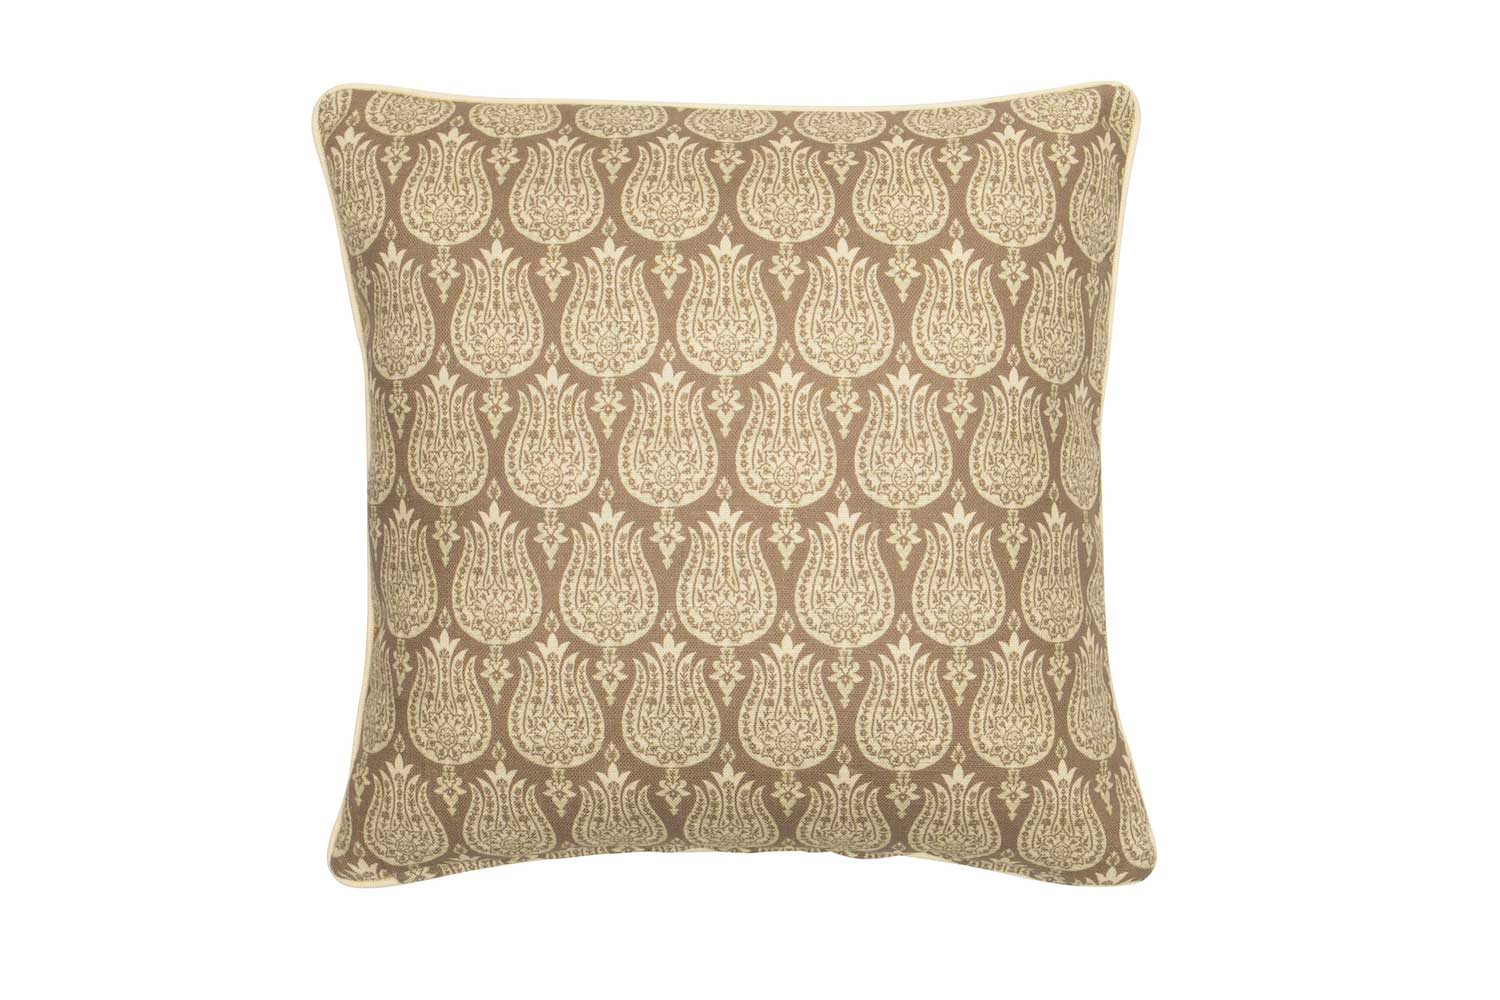 Abbot Atlas ottoman tulip sand fabric linen printed pillow cushion